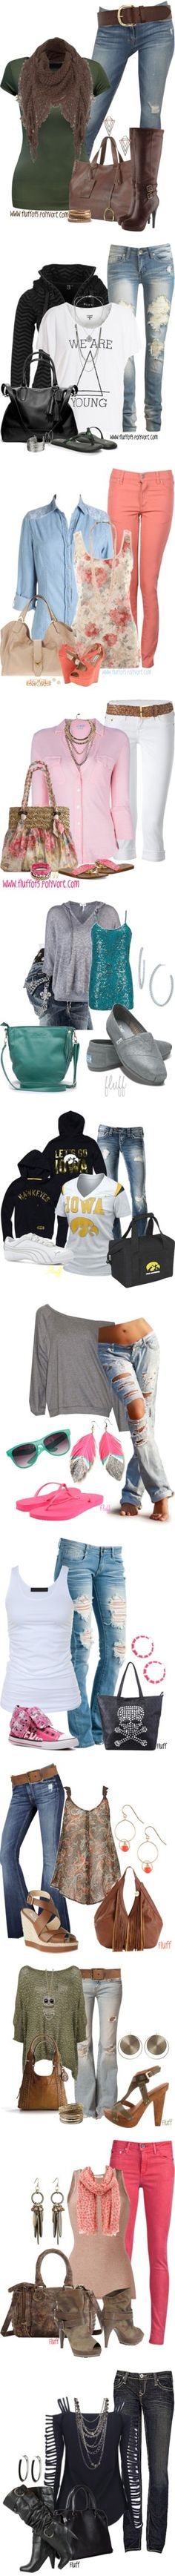 """Spring:)"" by kayla-zimmerman on Polyvore"